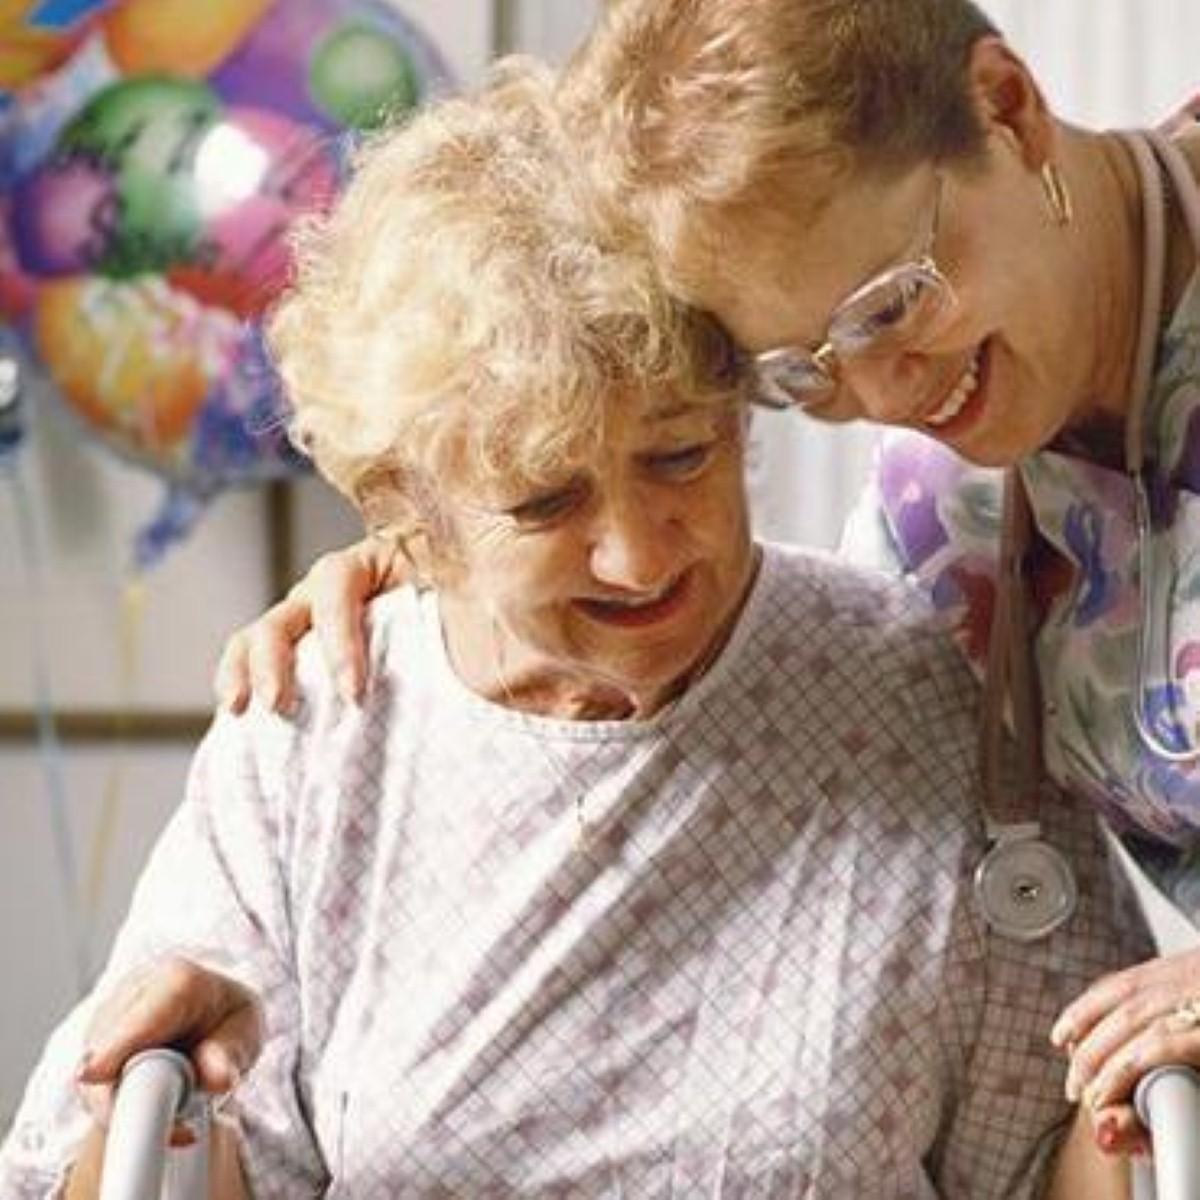 Arranging a care home prior to retirement 'better for health'